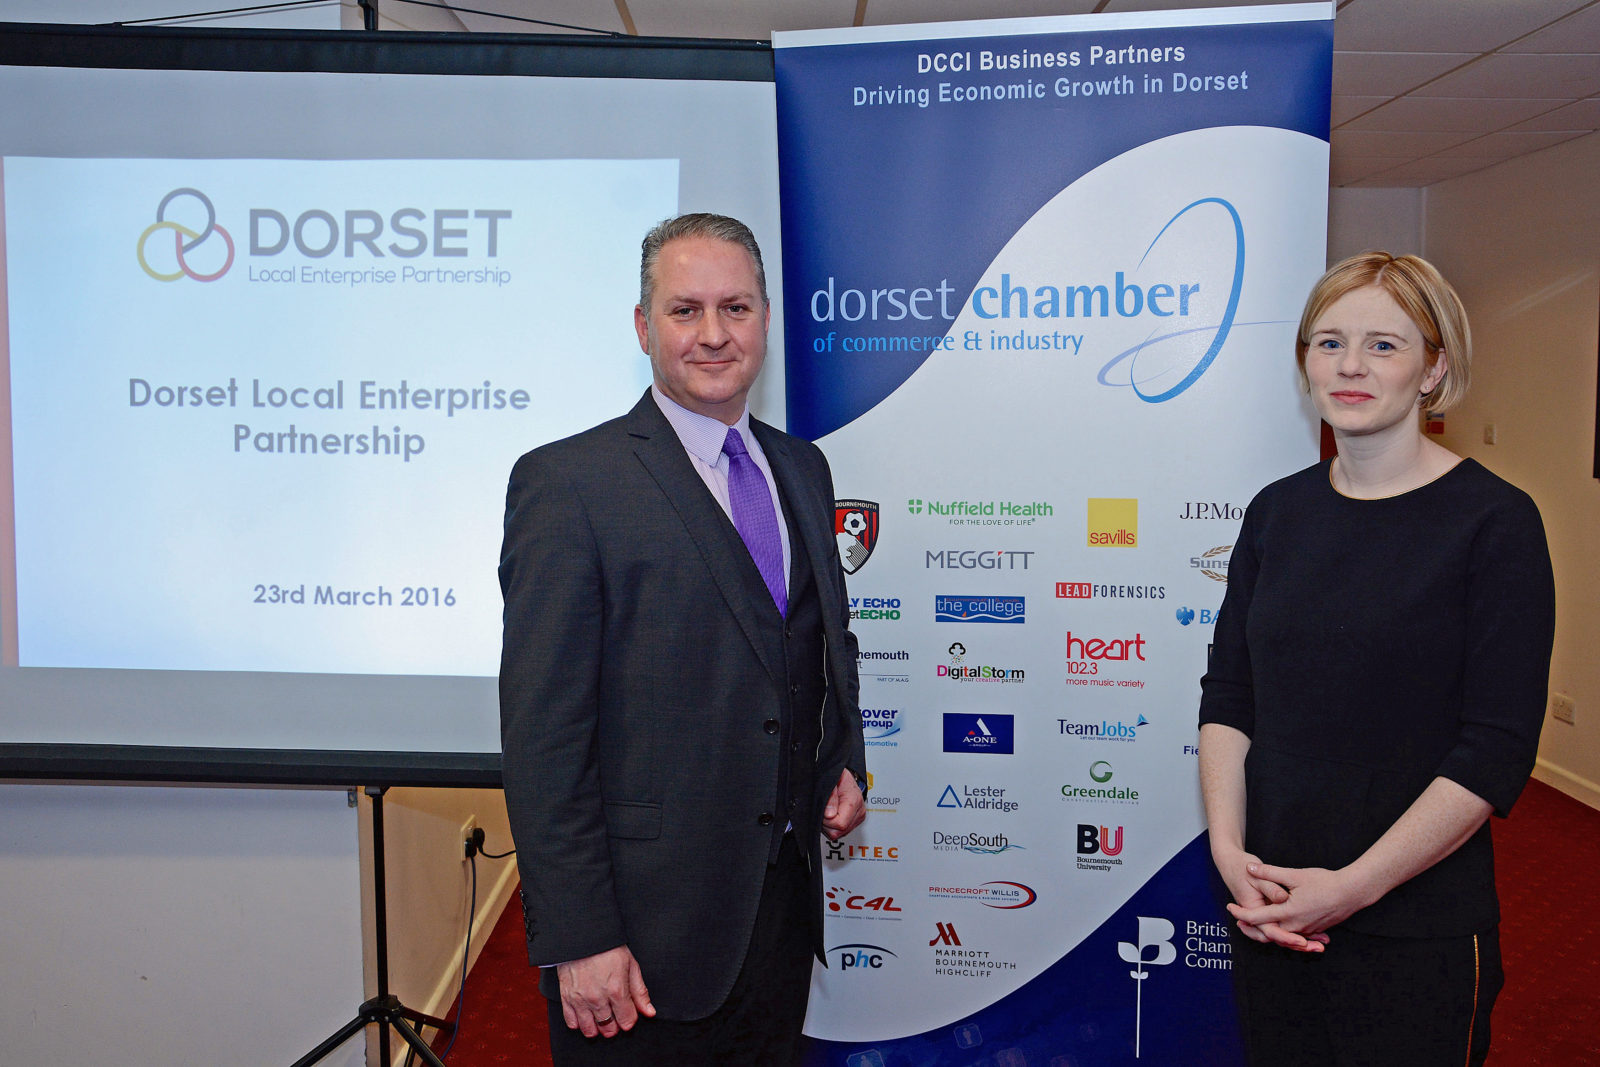 Dorset's economy under spotlight at DCCI meeting